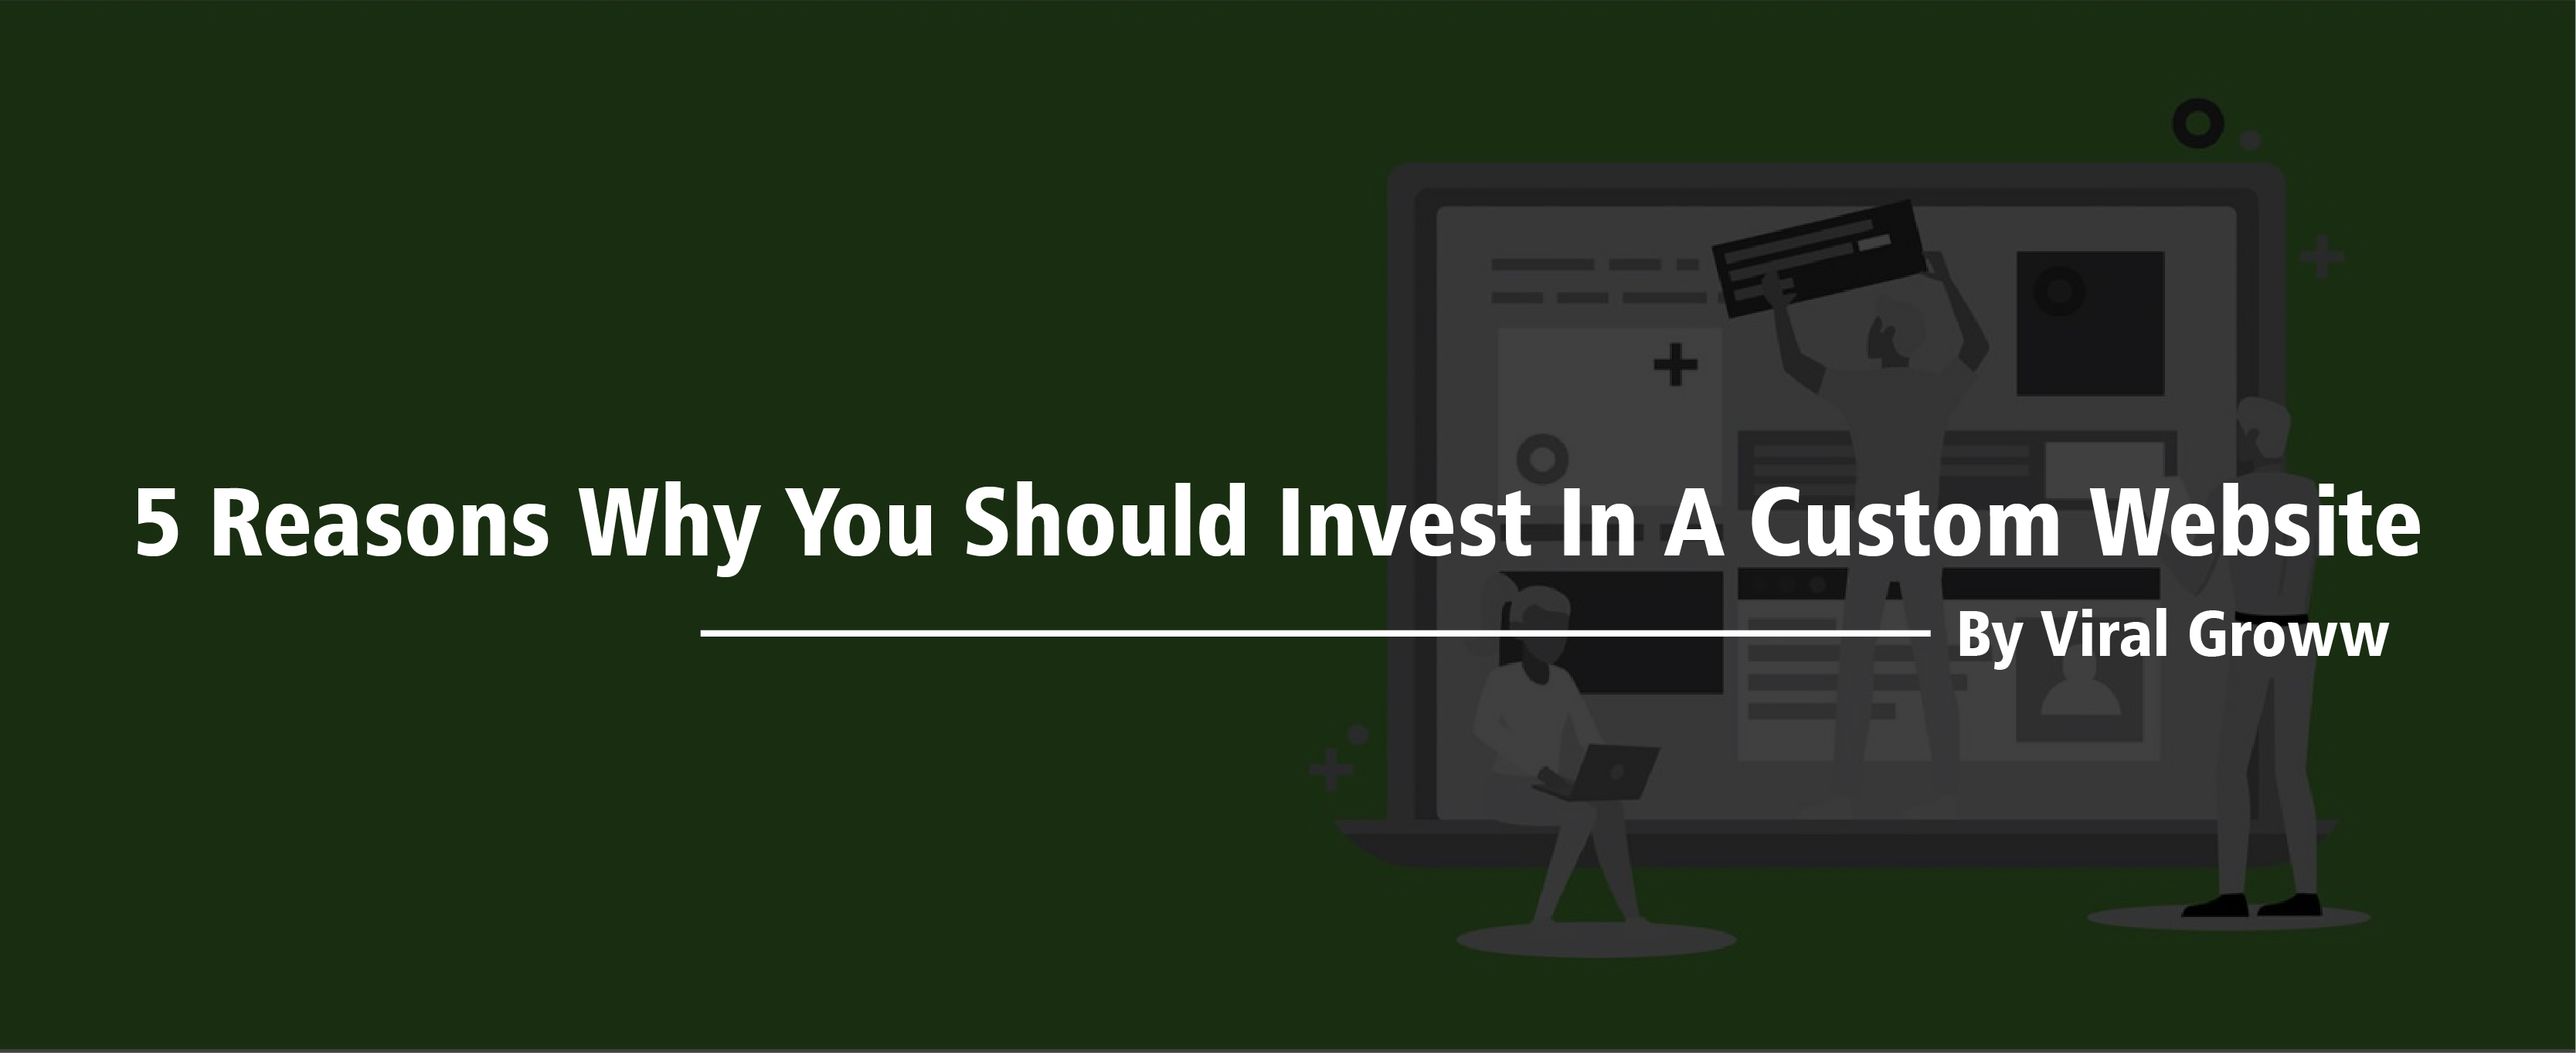 5 Reasons Why You Should Invest in a Custom Website